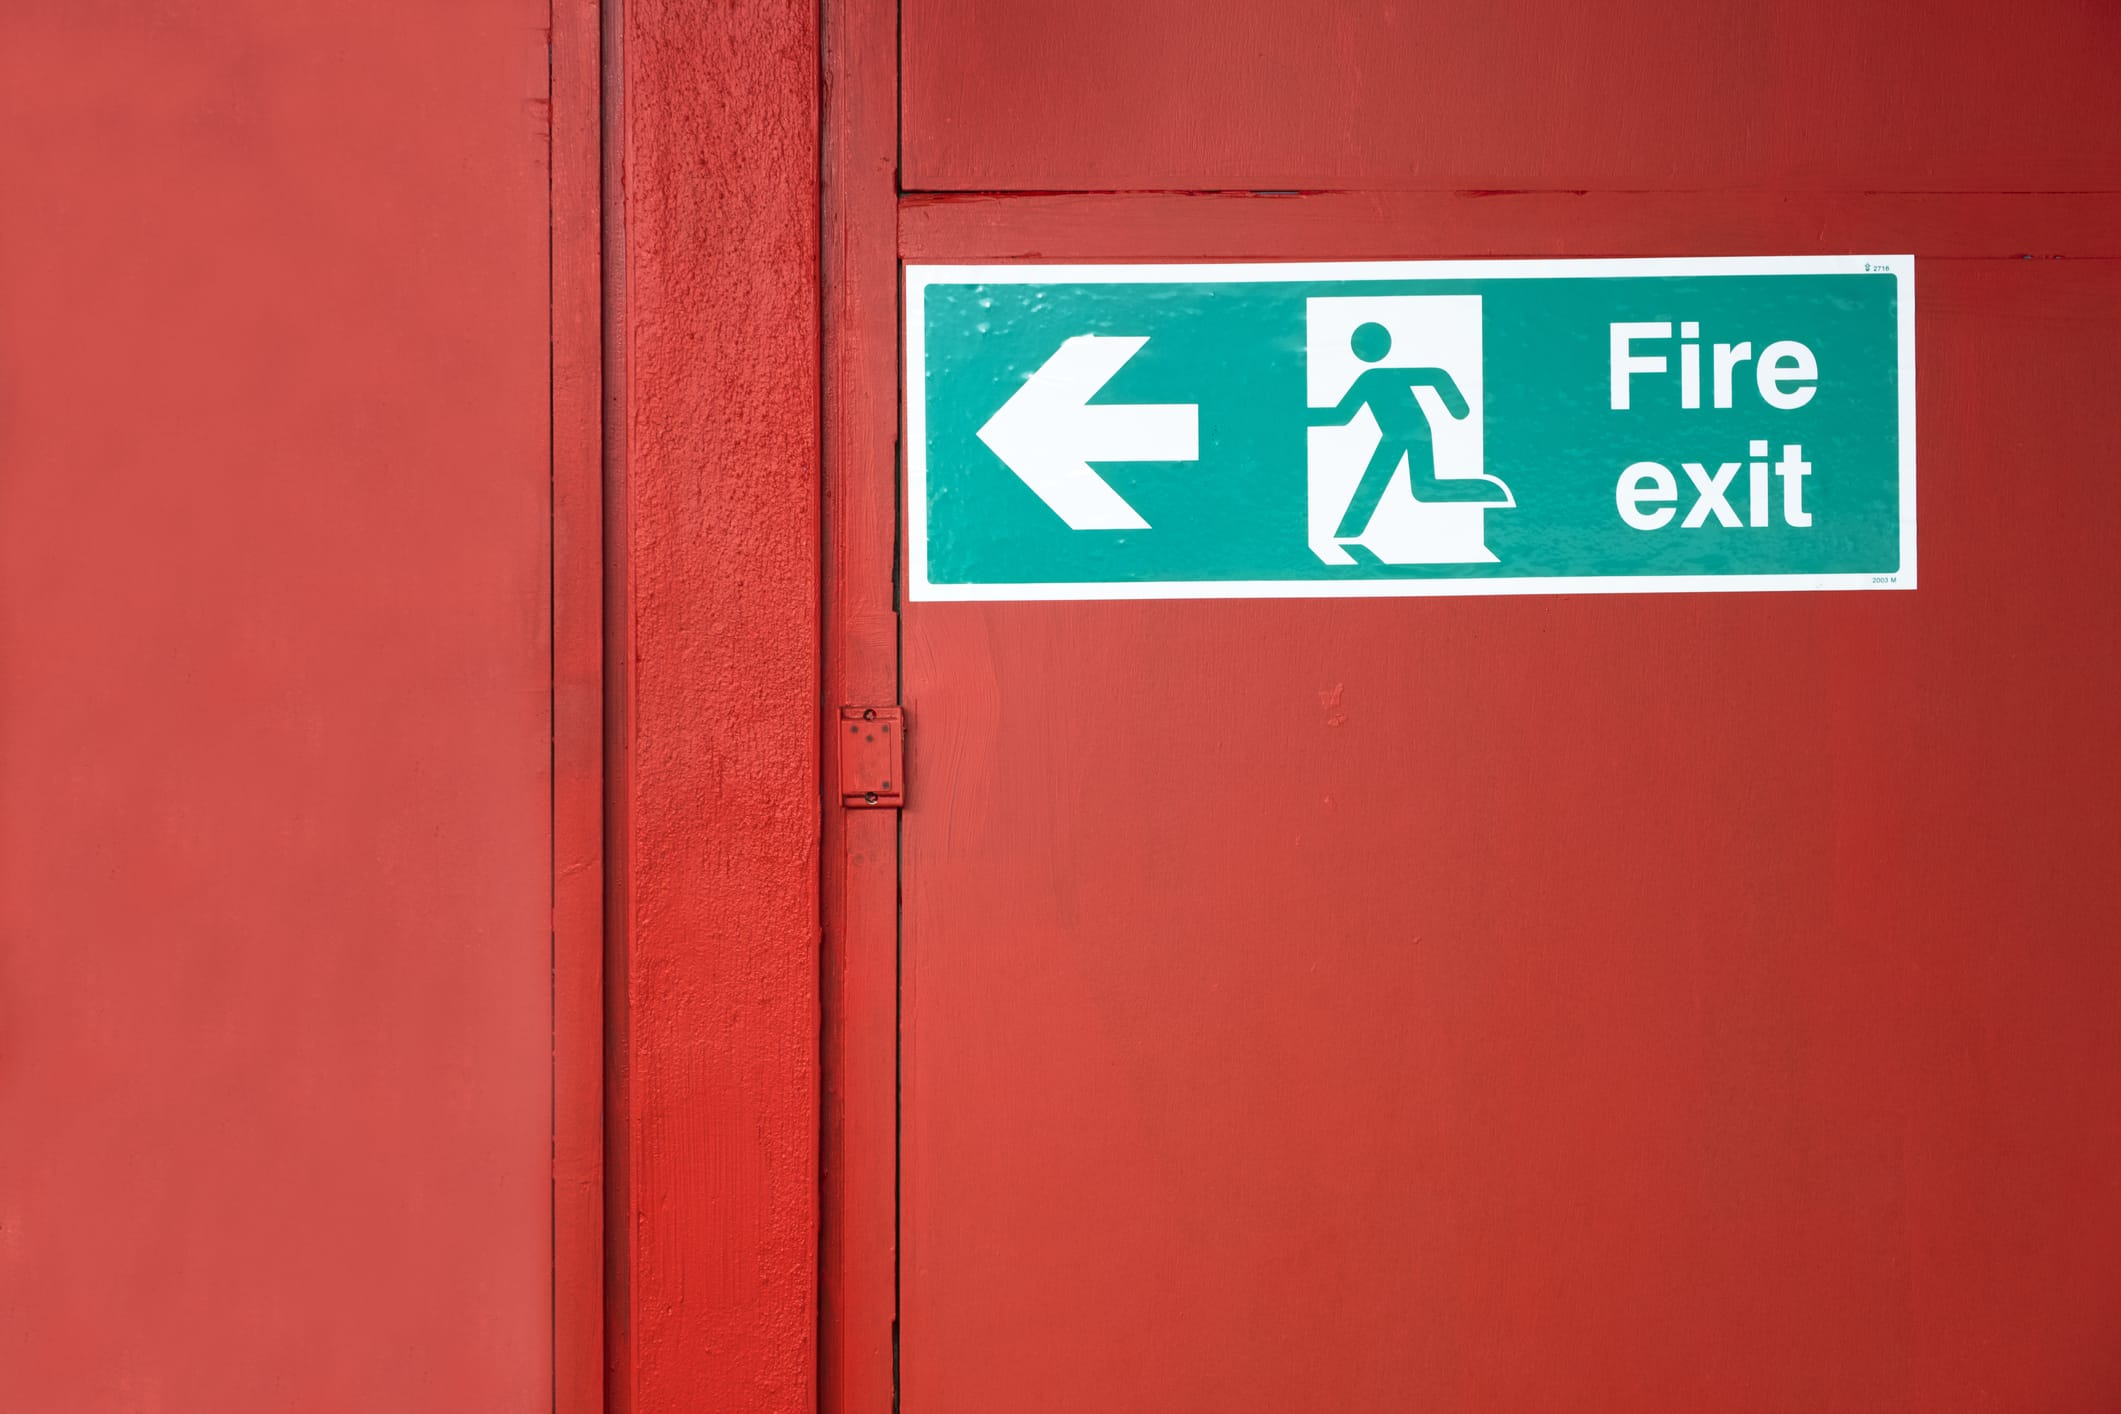 Practicing Smart Workplace Fire Safety - Fraker Fire Protection